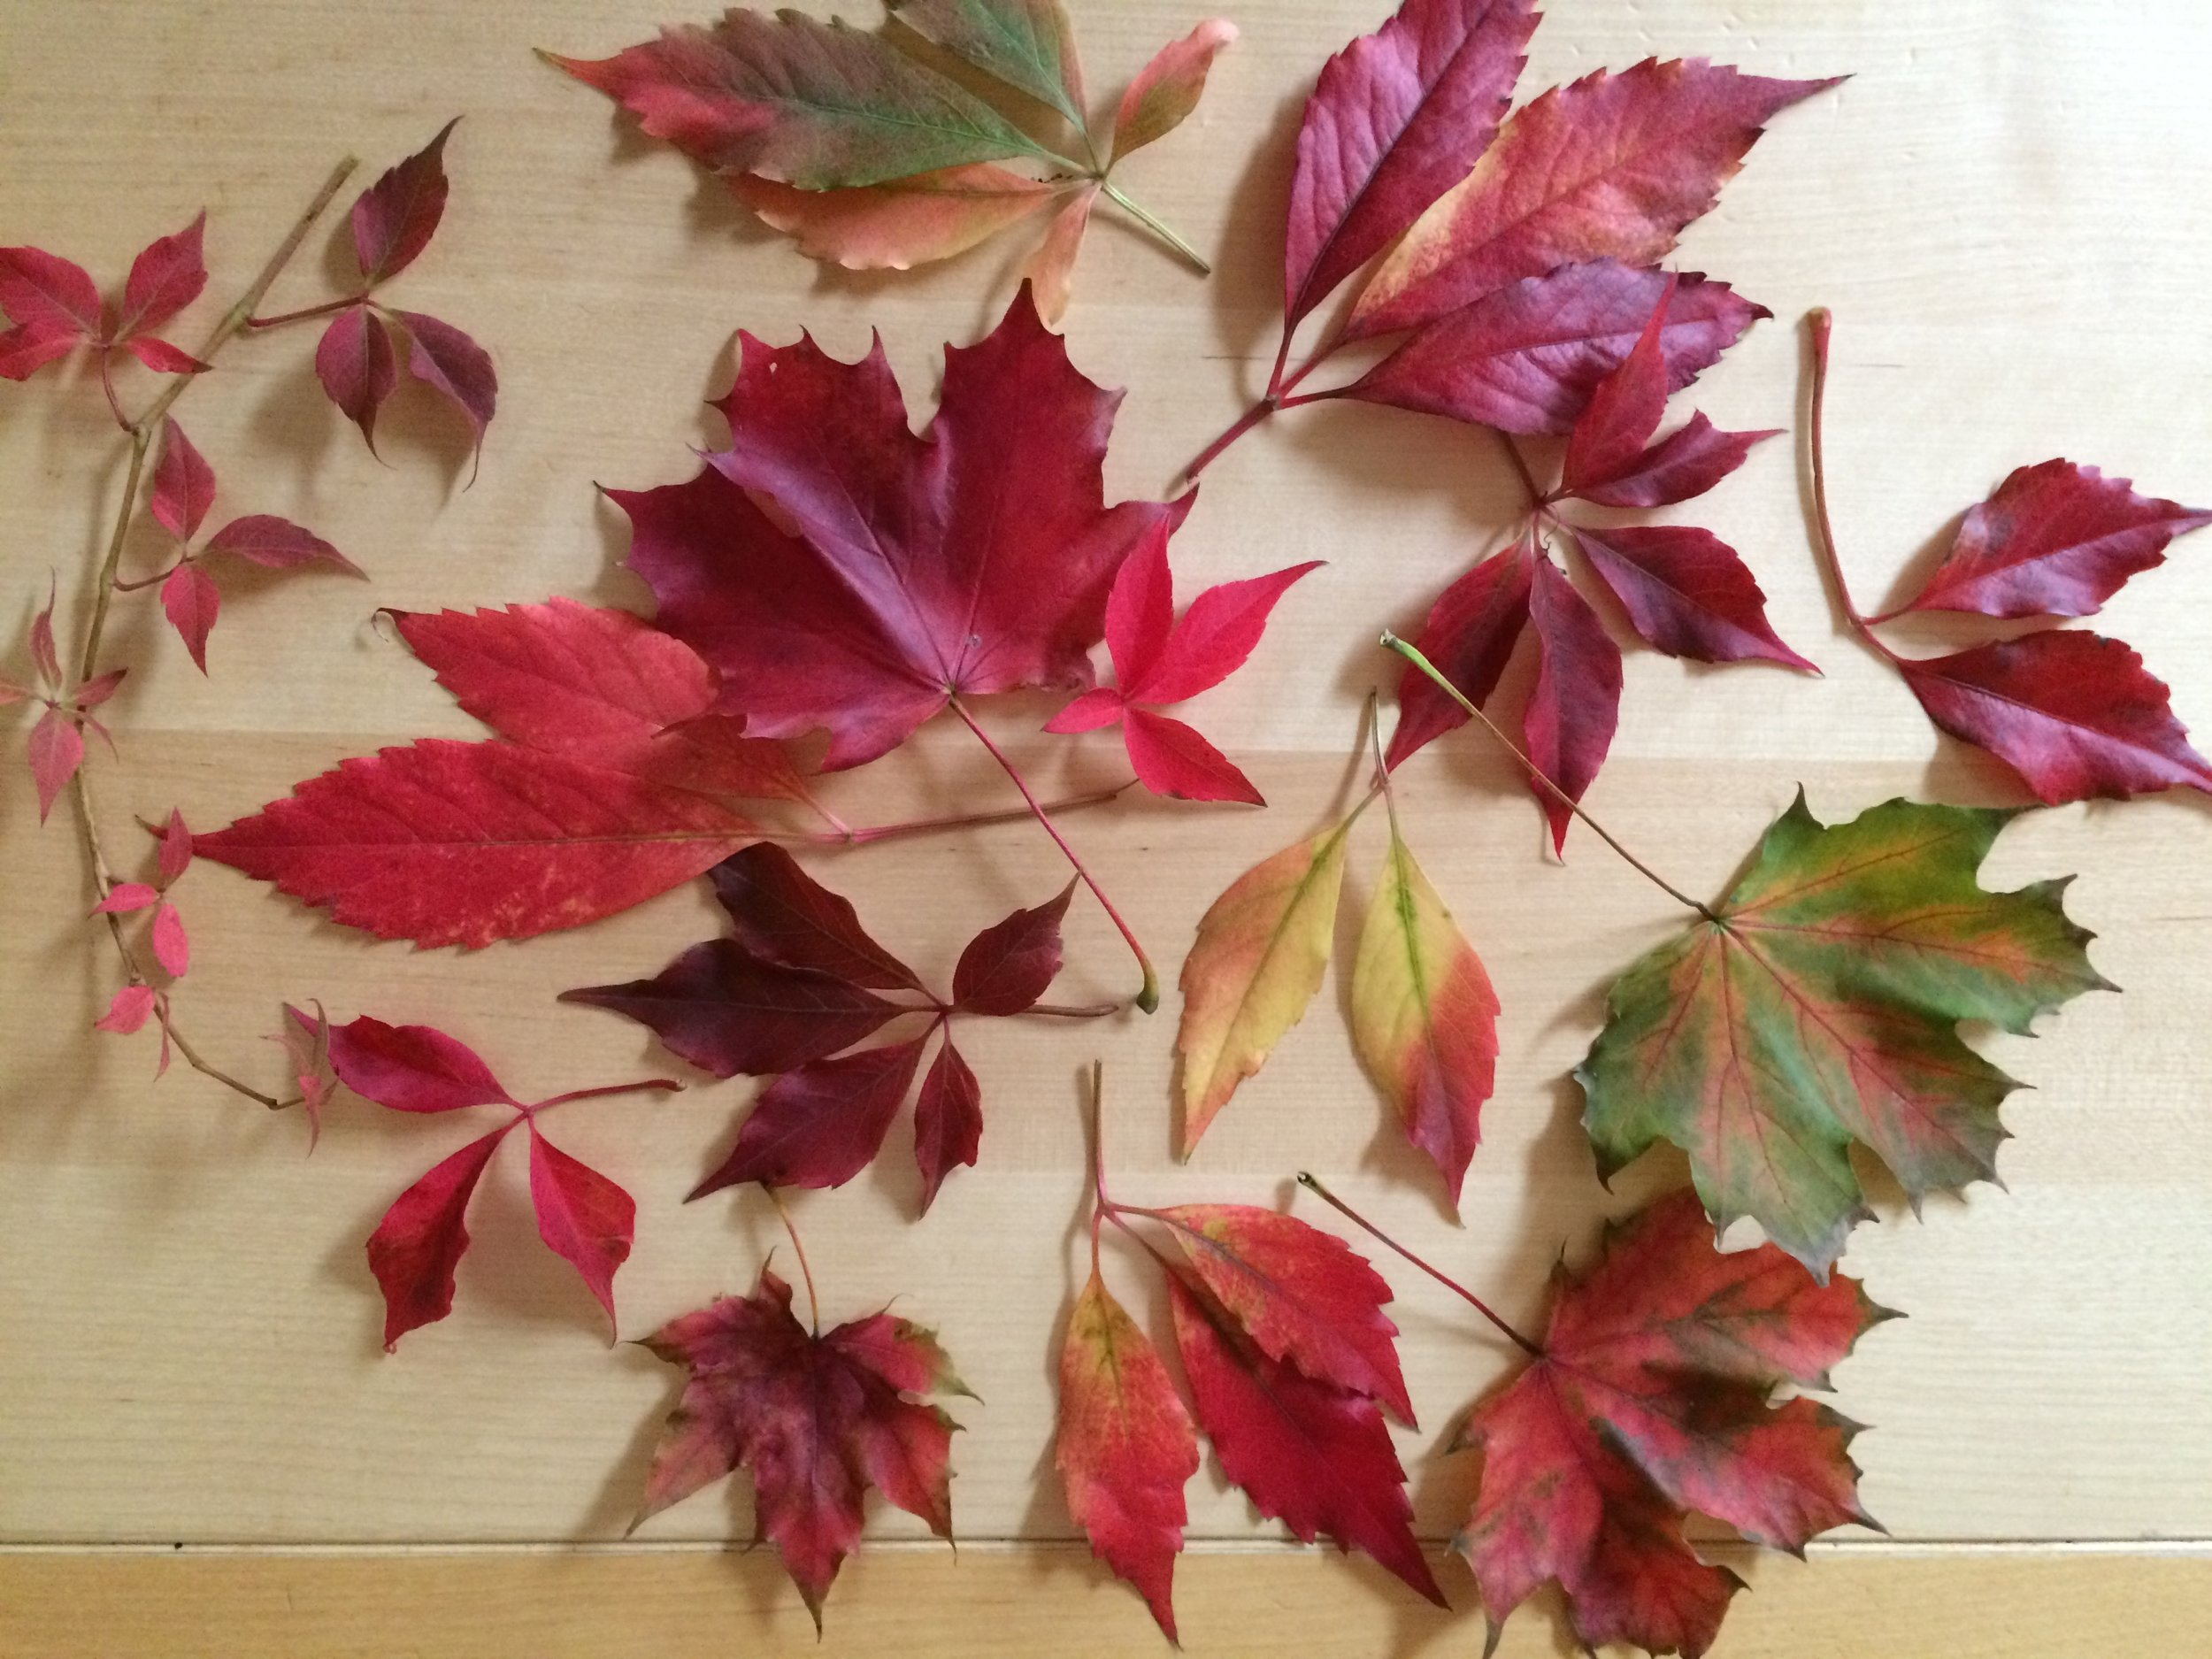 waxing autumn leaves